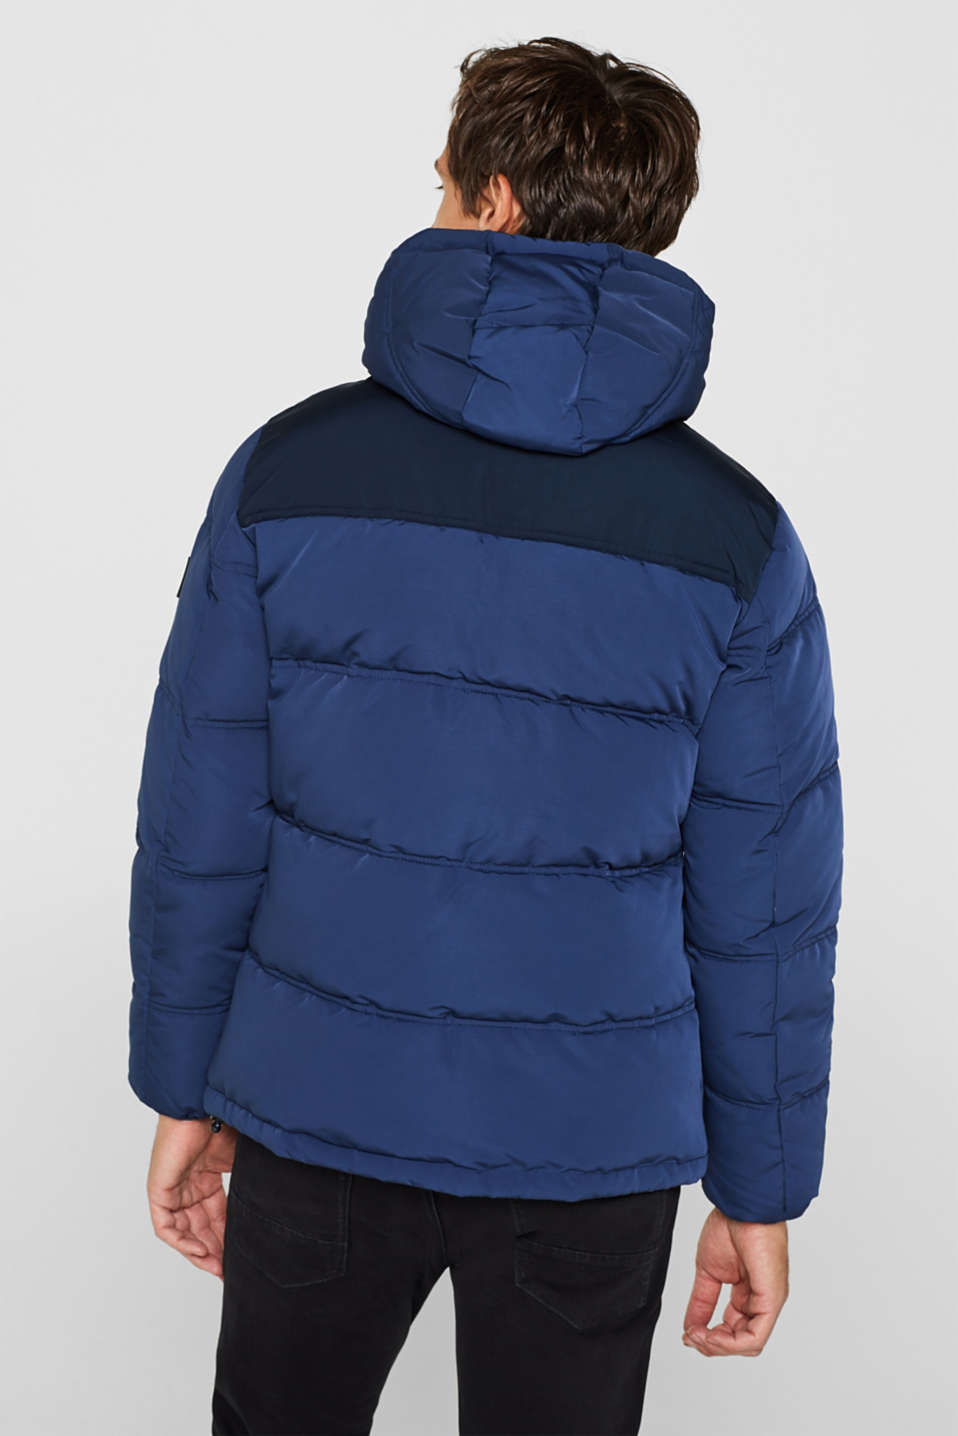 Jackets outdoor woven, BLUE, detail image number 3